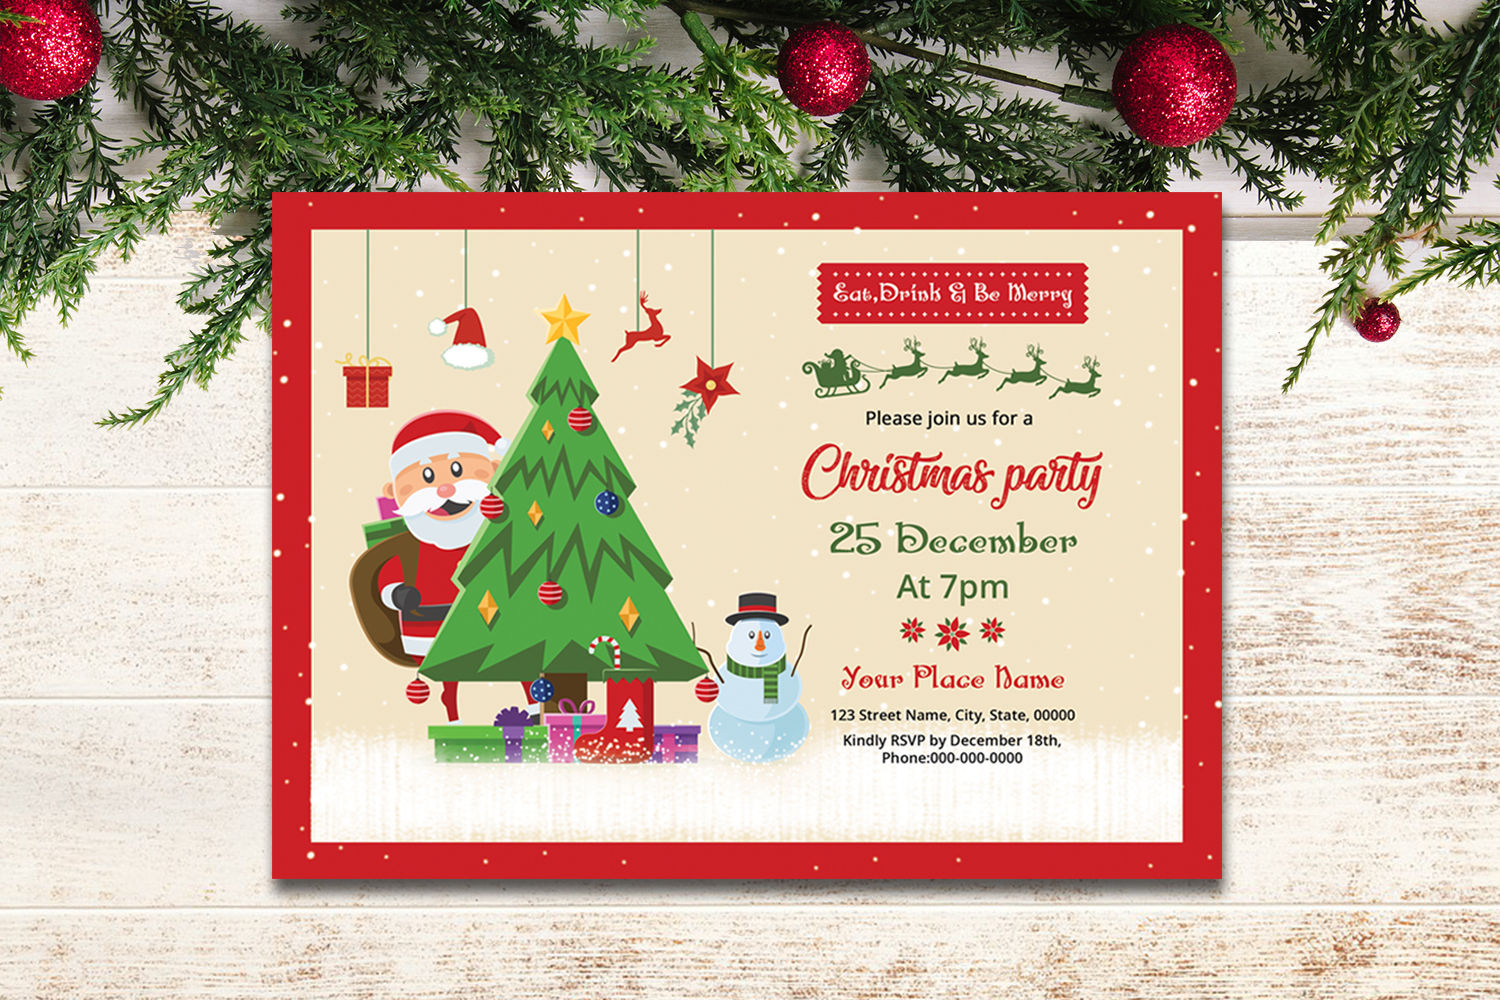 Christmas Party Invitation example image 3